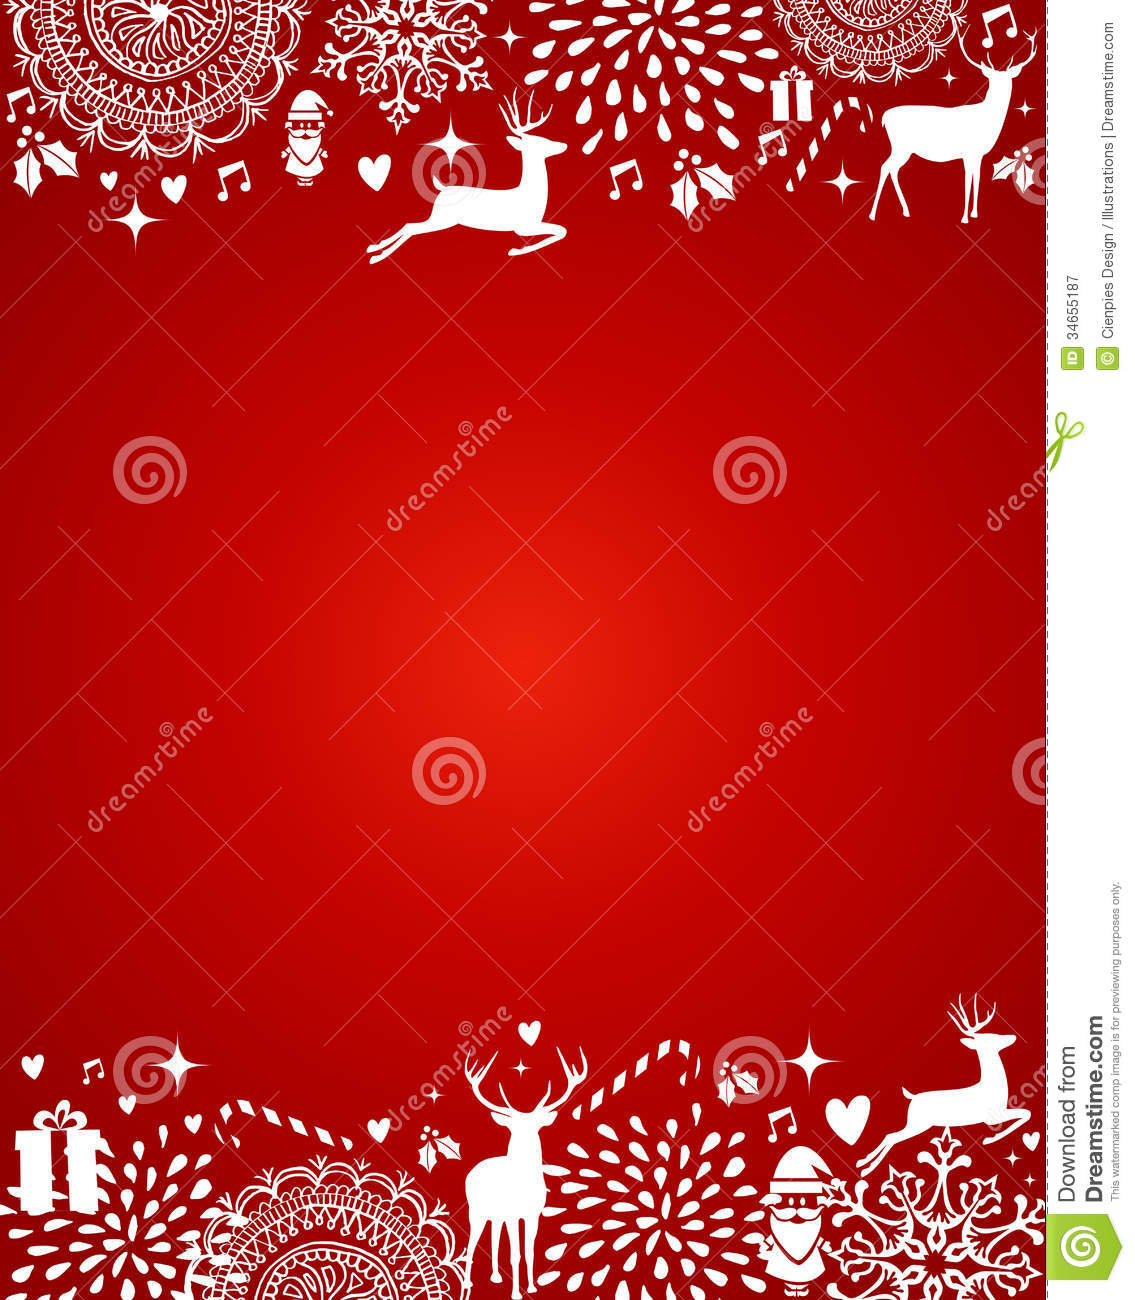 10 christmas templates free download images free